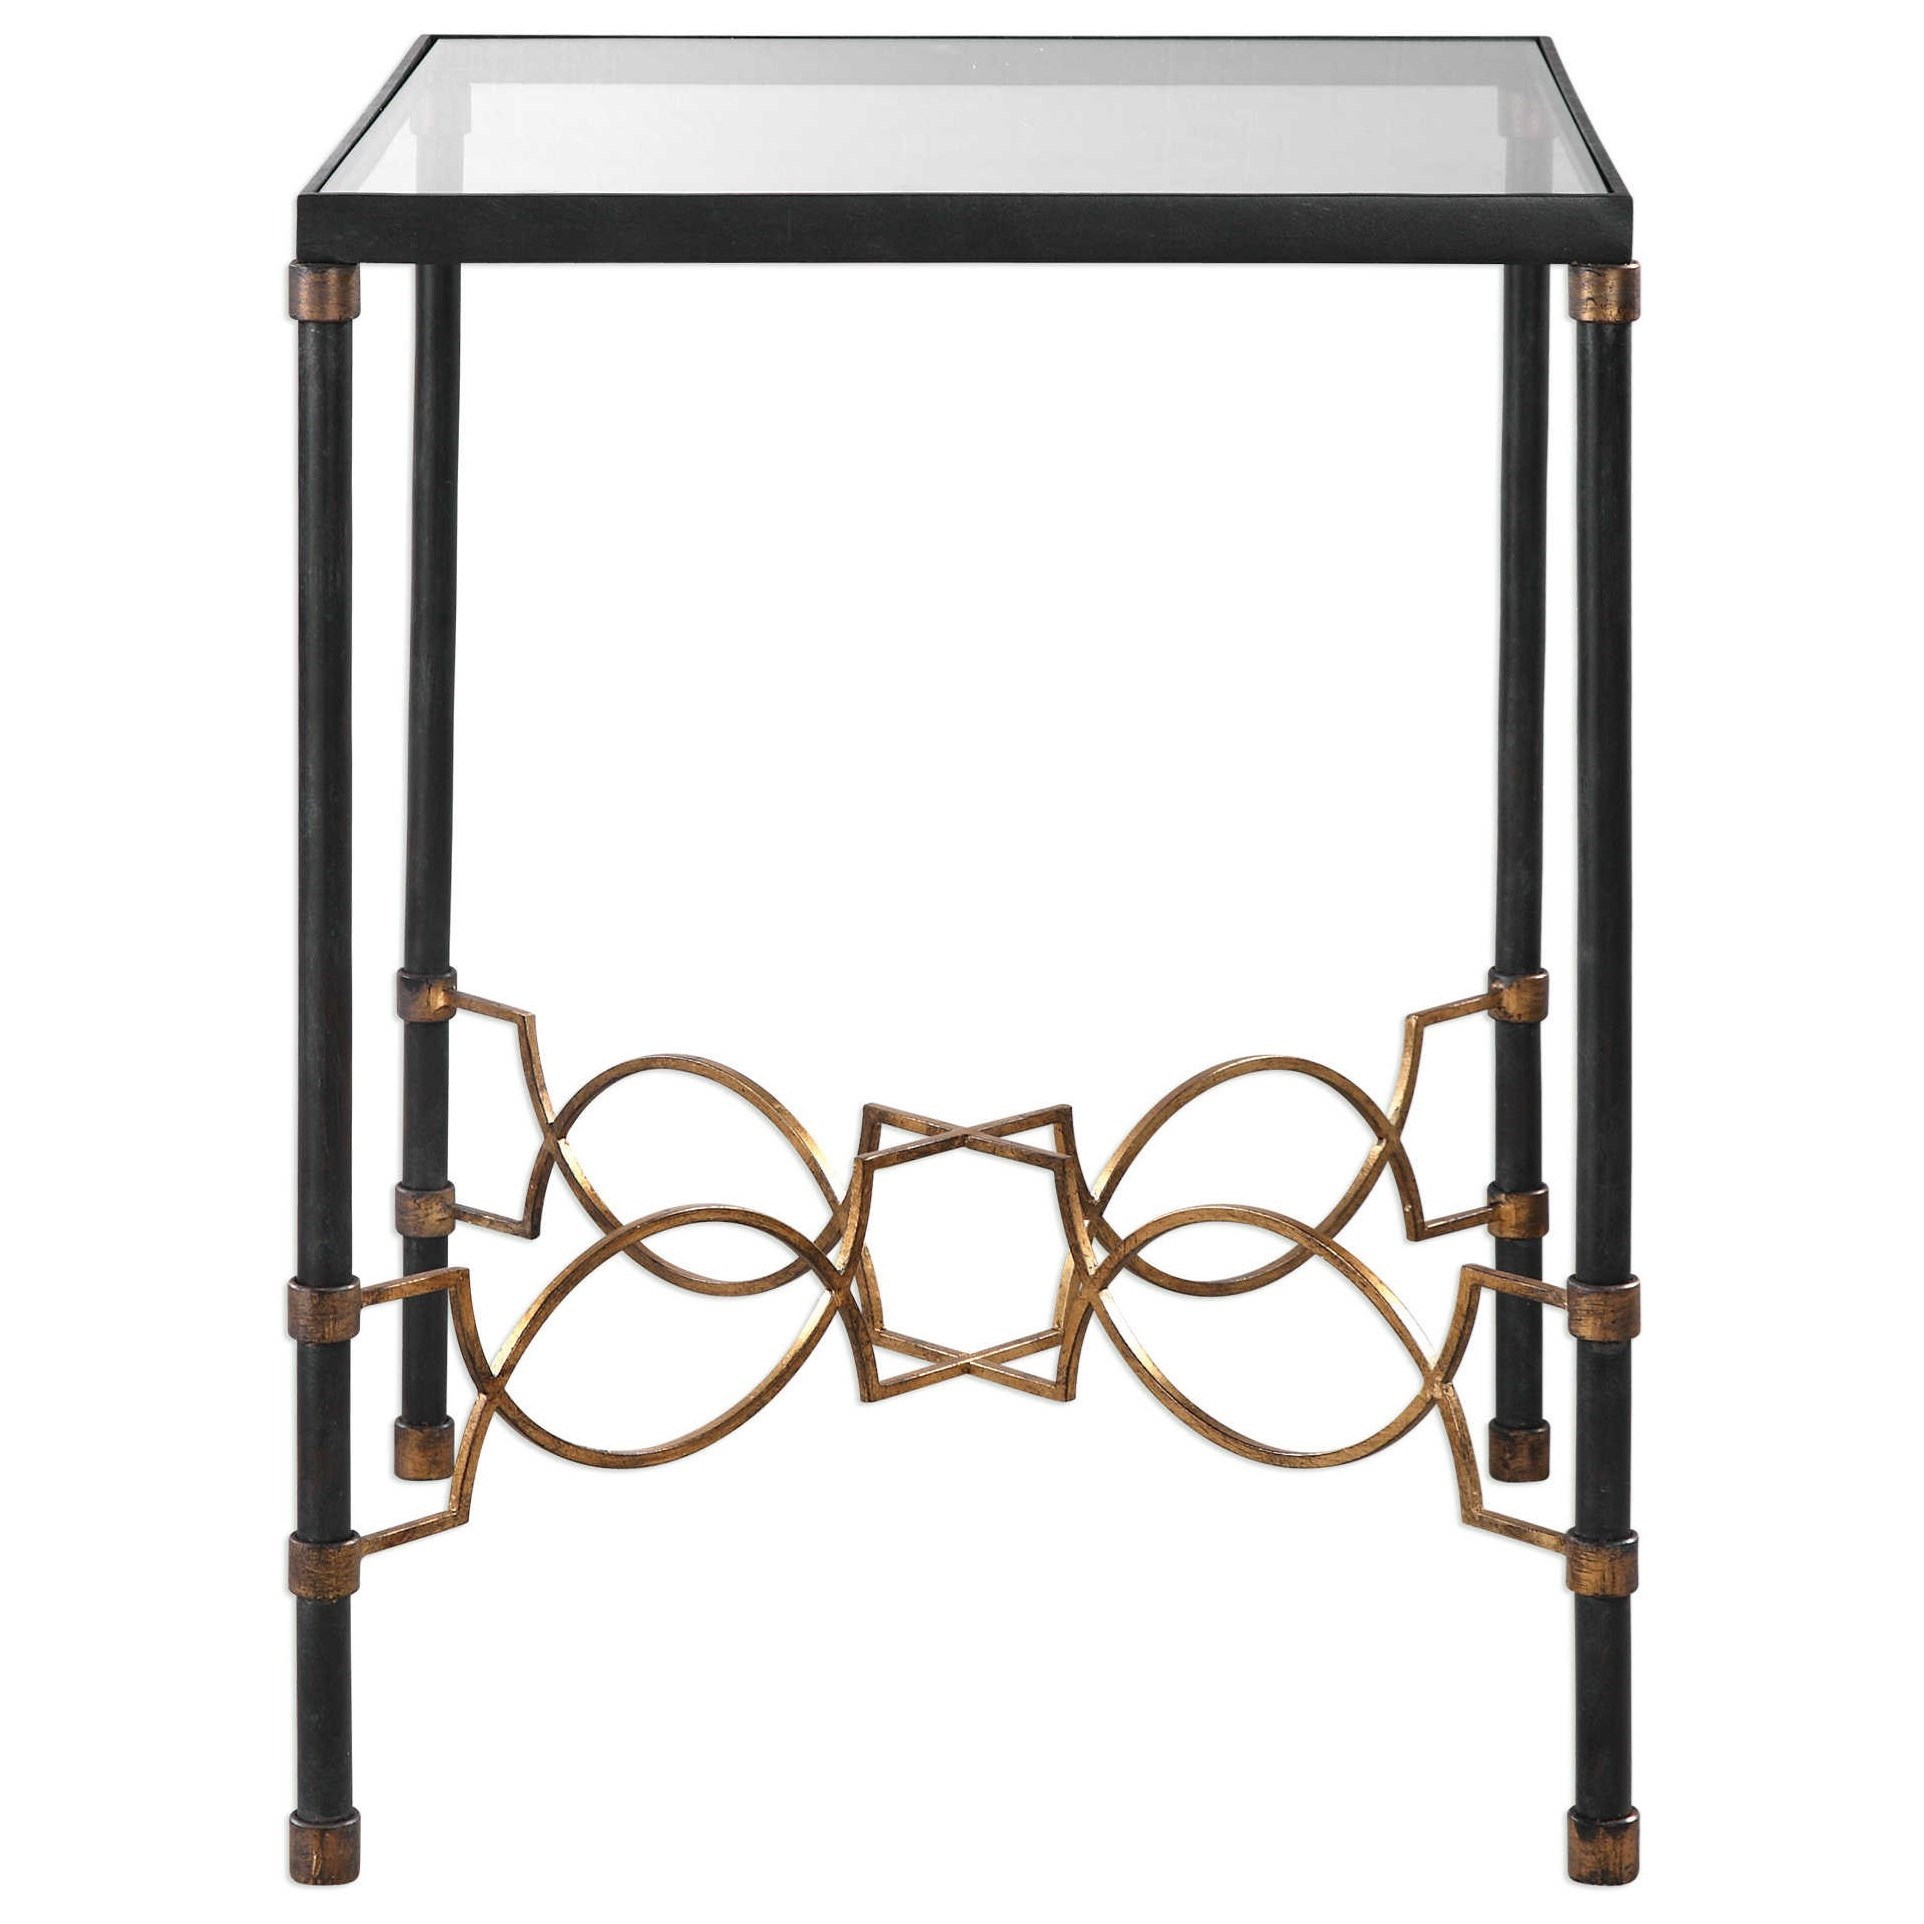 Uttermost Accent Furniture Josie Industrial Black Accent Table - Item Number: 24718